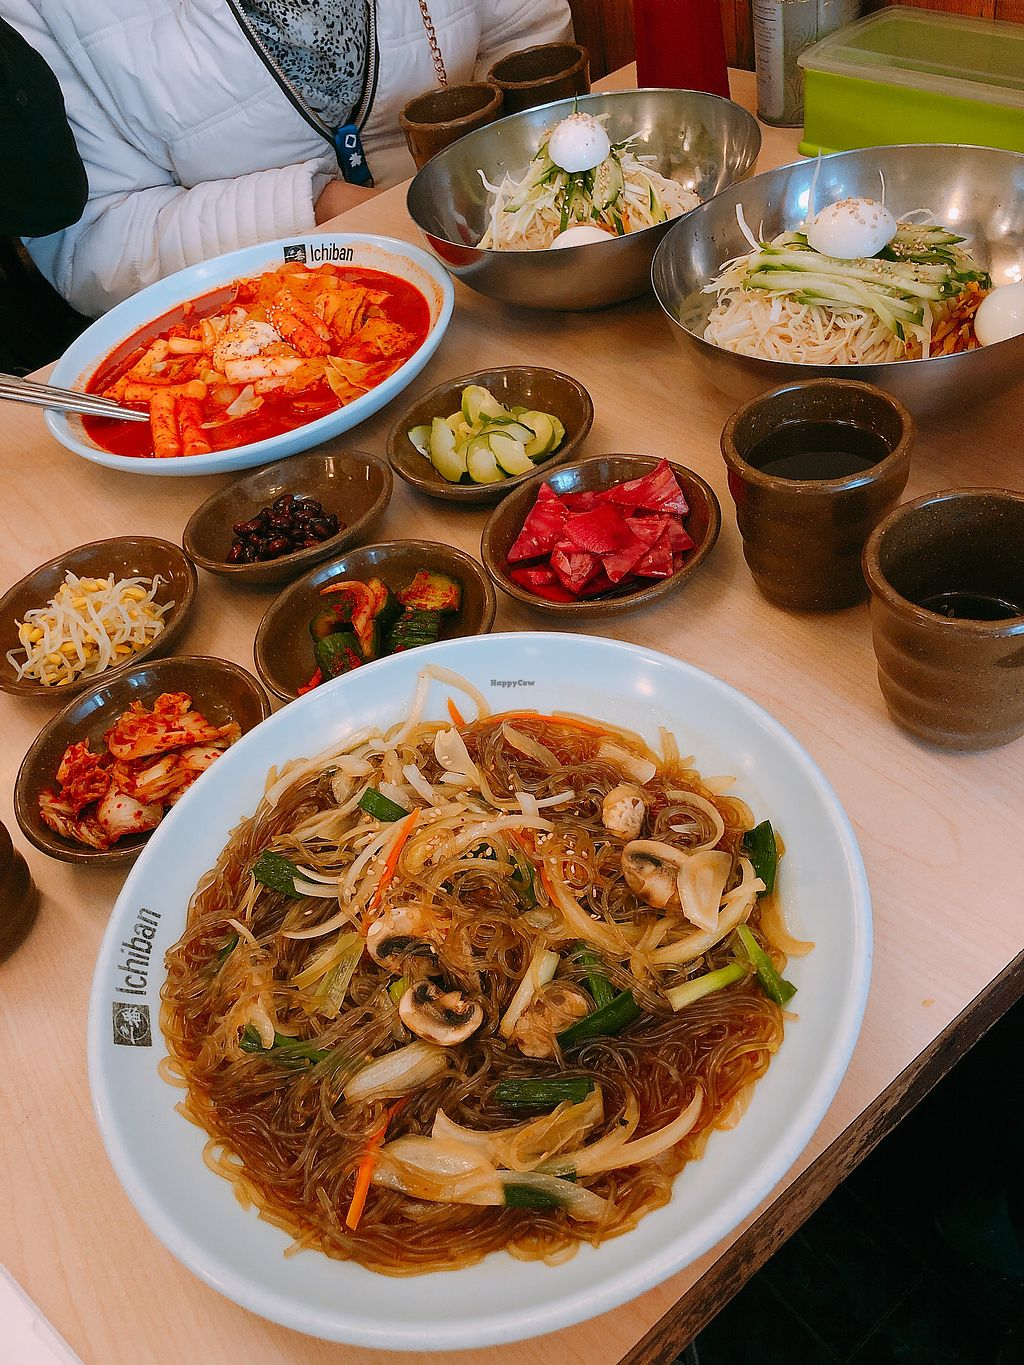 "Photo of Imonay Korean Restaurant  by <a href=""/members/profile/janitajasmin"">janitajasmin</a> <br/>Japchae and delicious side dishes (other dishes in this picture are not vegan) <br/> March 13, 2018  - <a href='/contact/abuse/image/33782/370129'>Report</a>"